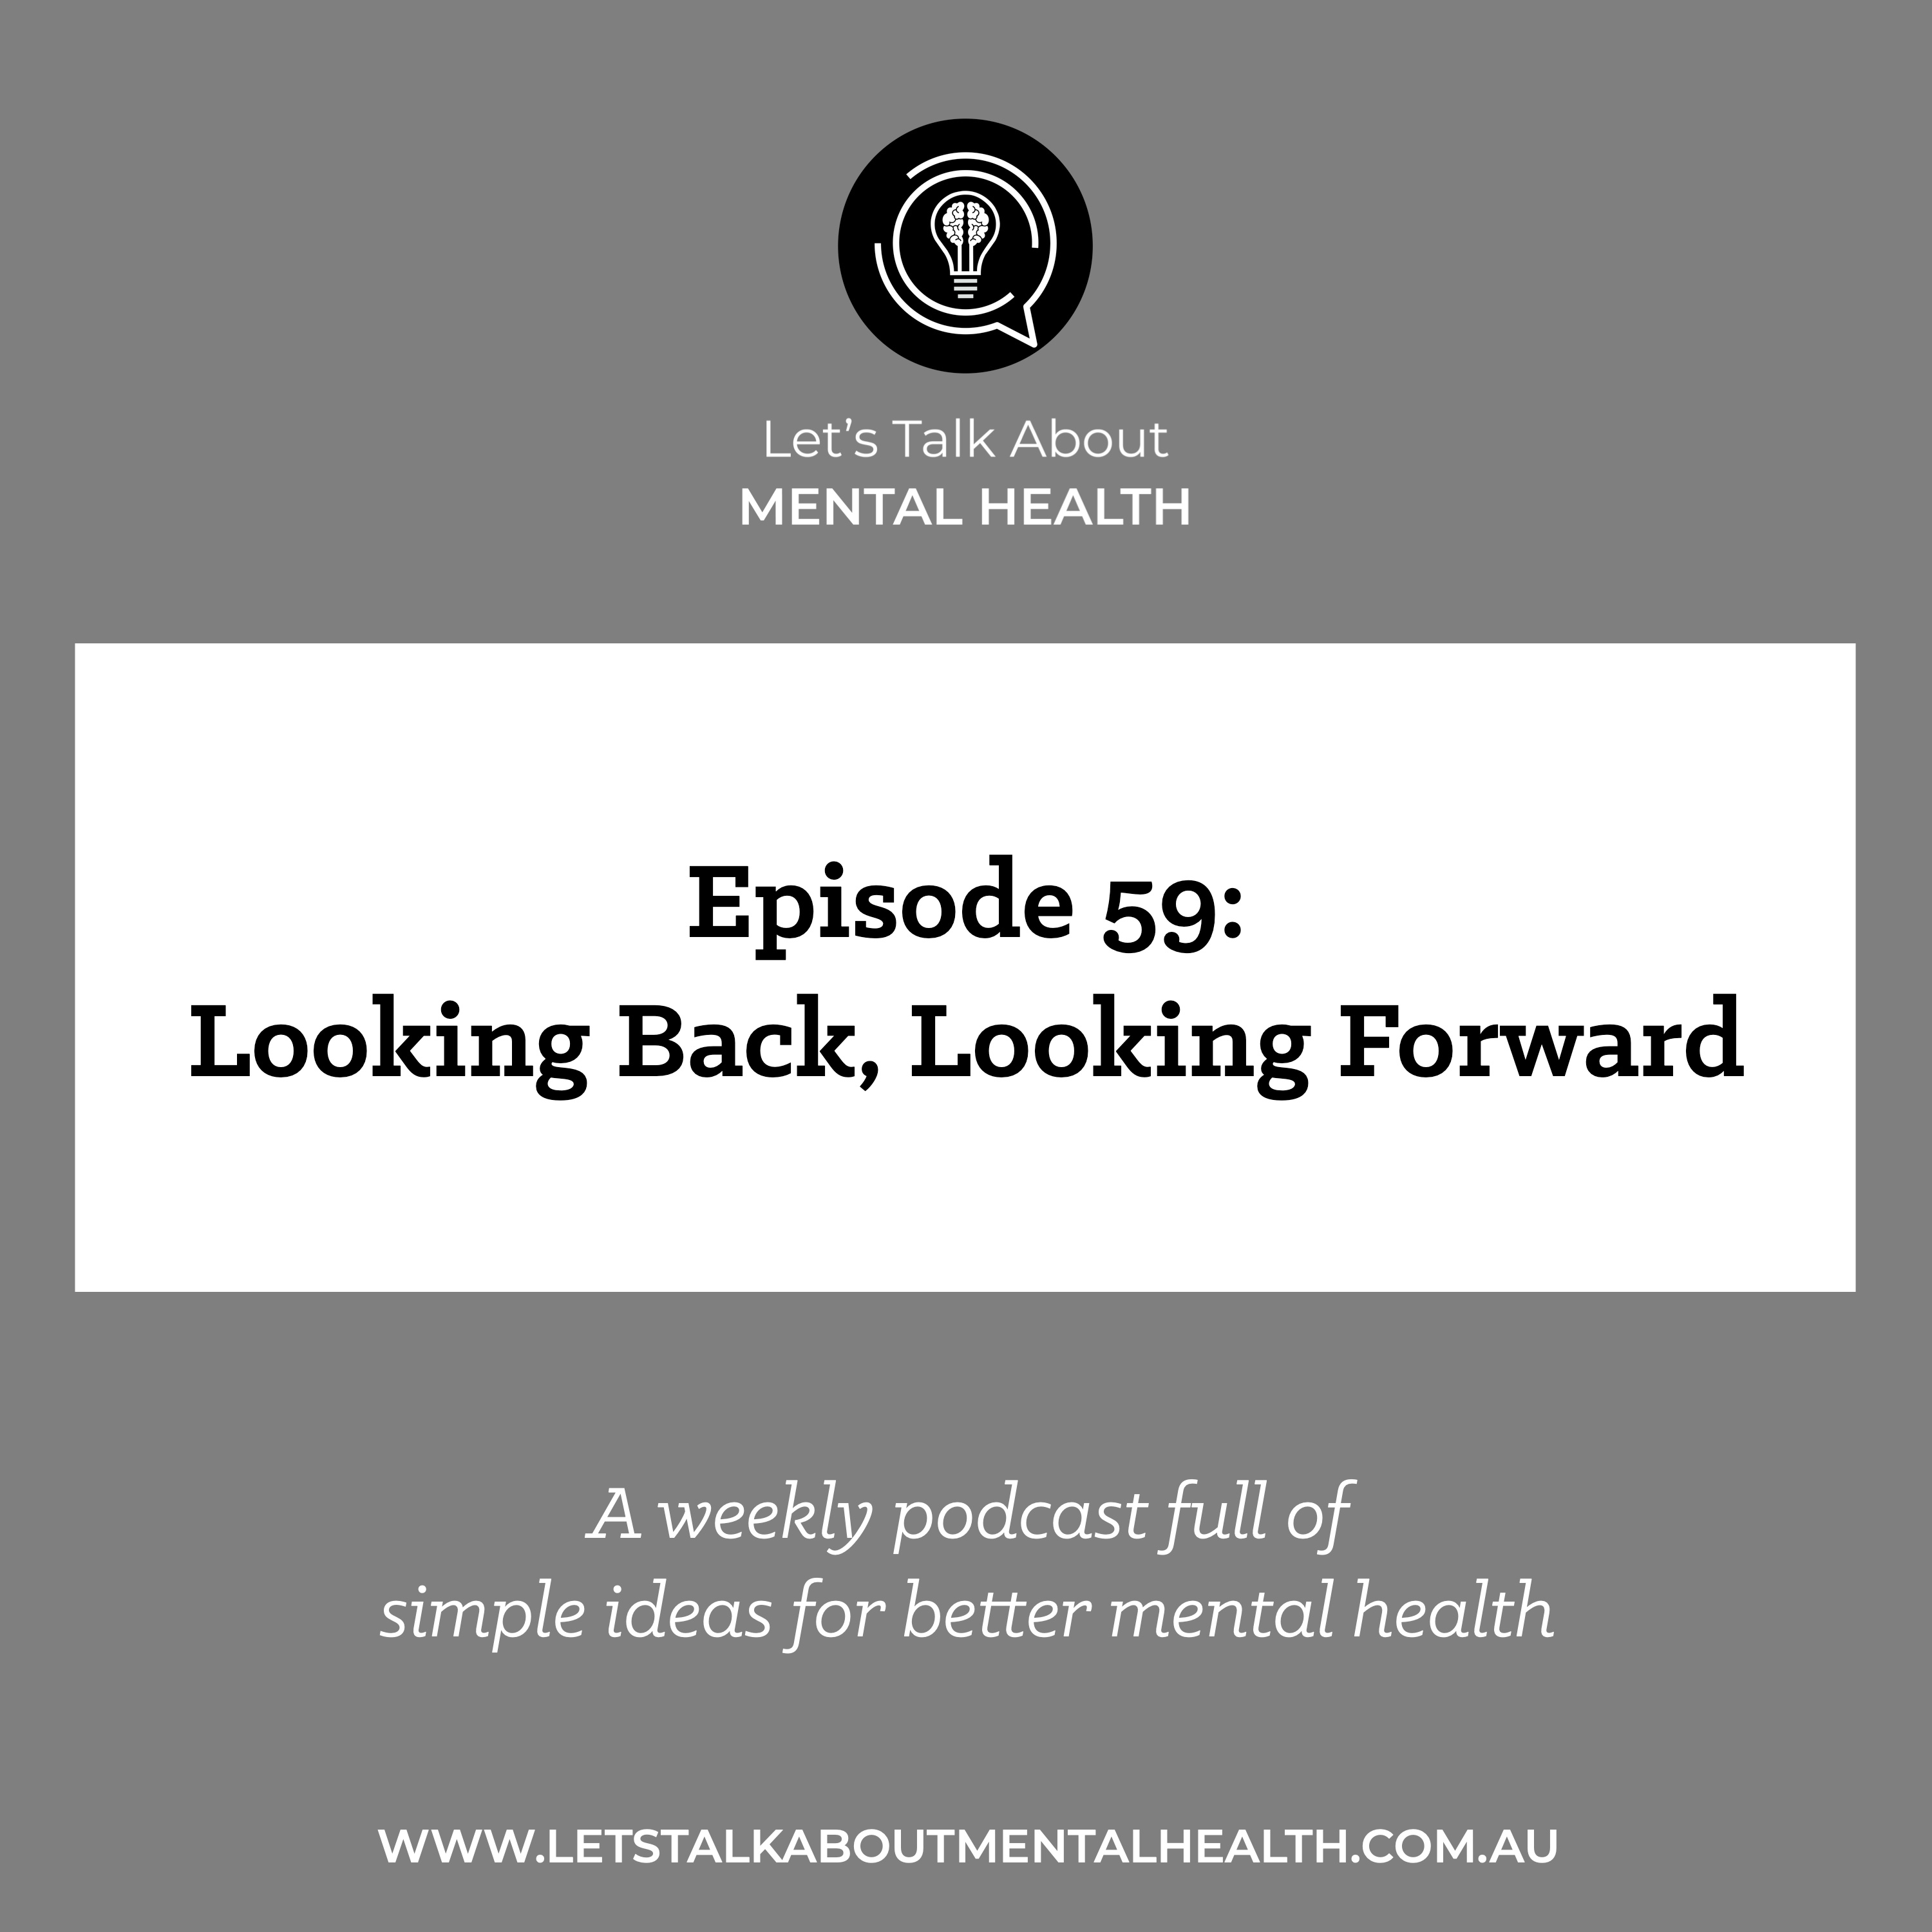 Let's Talk About Mental Health - Looking Back, Looking Forward